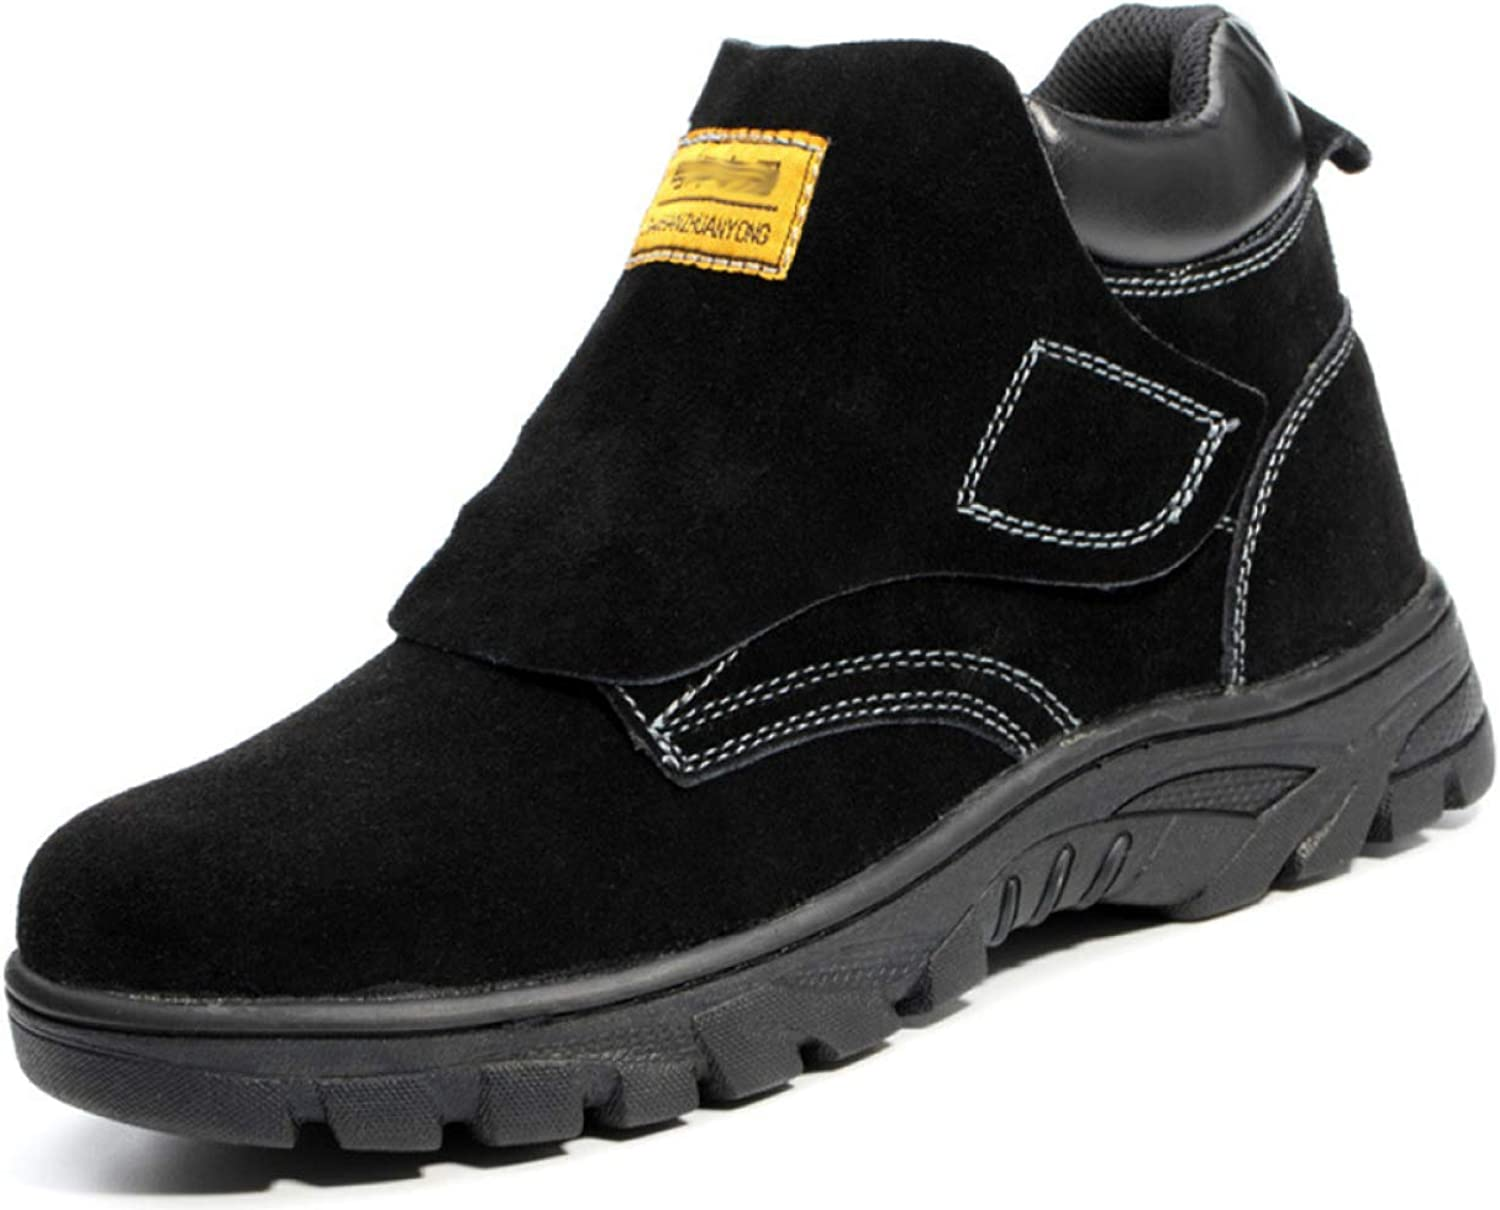 Men's Steel Work Boots Industrial And Construction shoes Anti-puncture Safety shoes Warm Lining